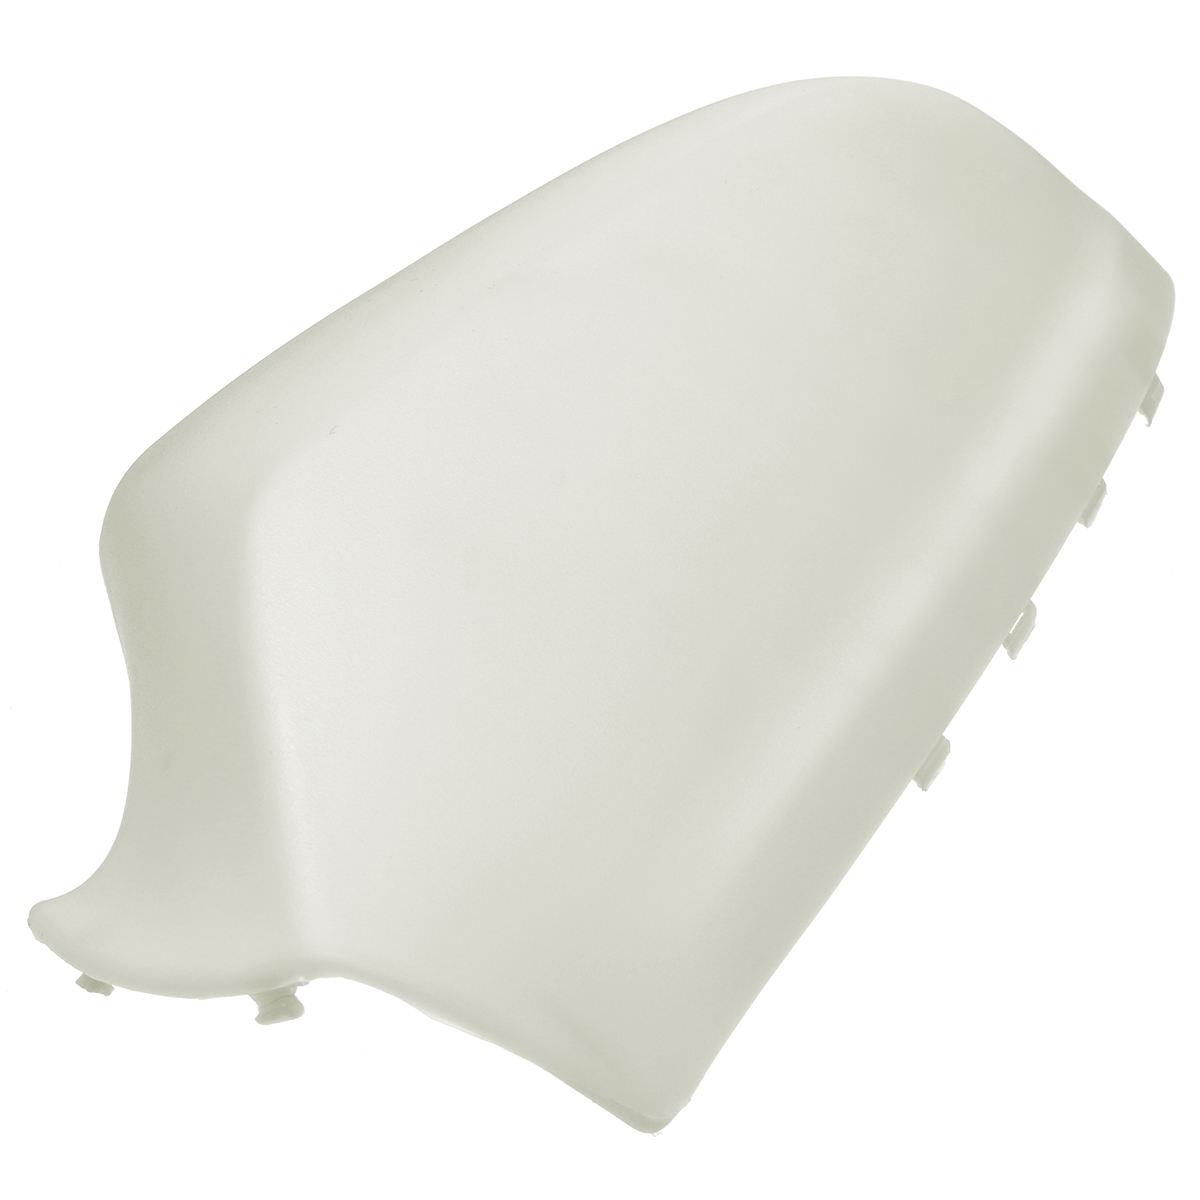 VAUXHALL MERIVA B  DRIVERS WING DOOR MIRROR COVER PAINTED OLYMPIC WHITE GAZ 40R